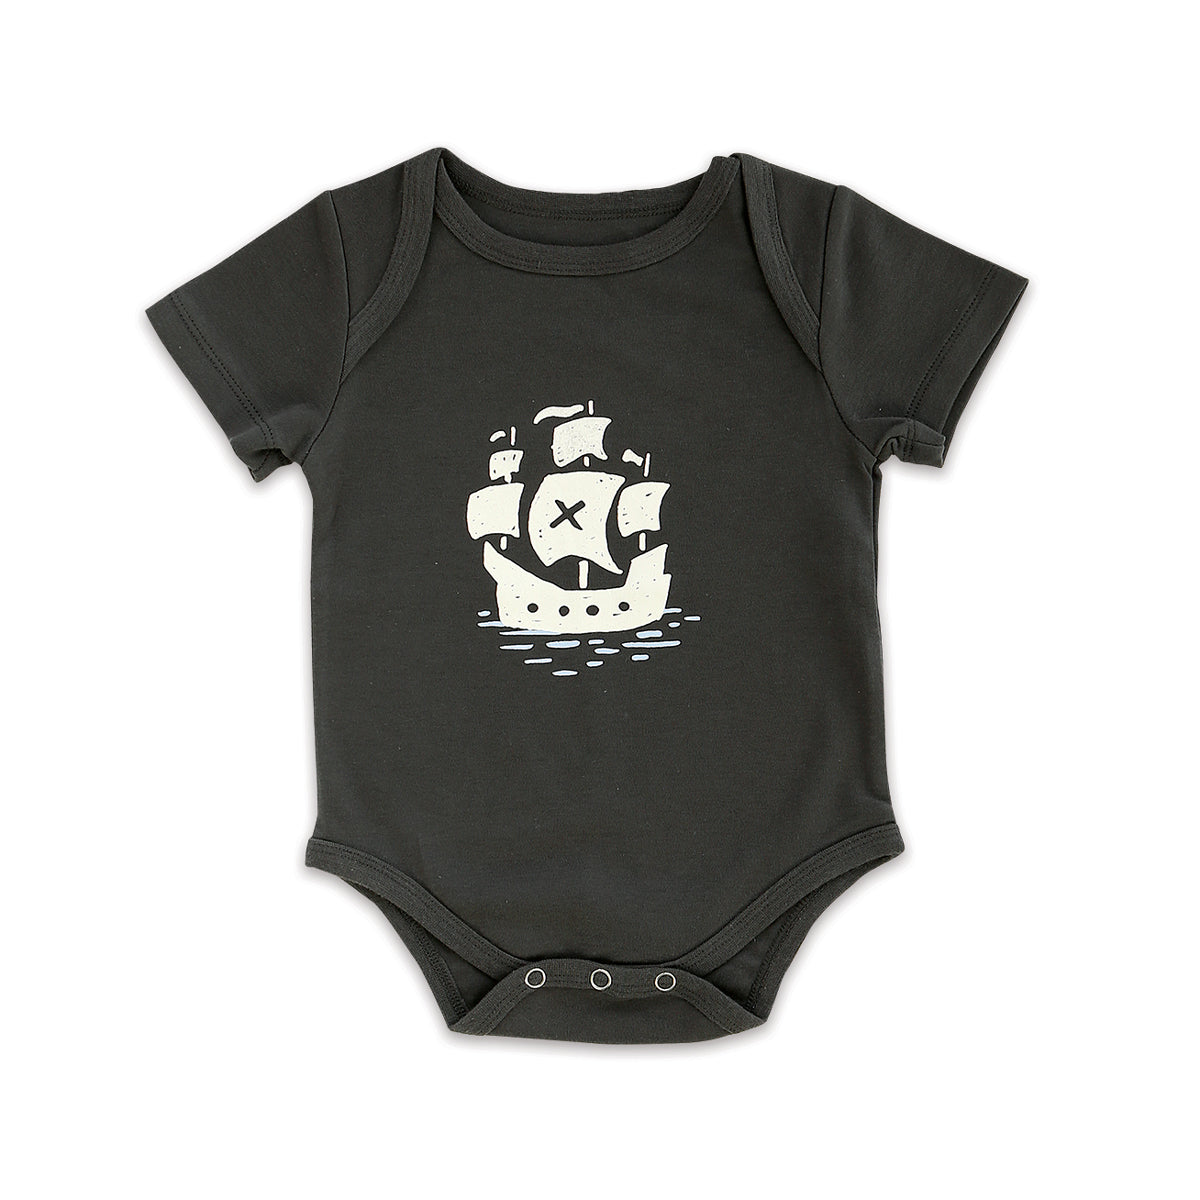 Organic Cotton Short Sleeve Onesie (Iron)